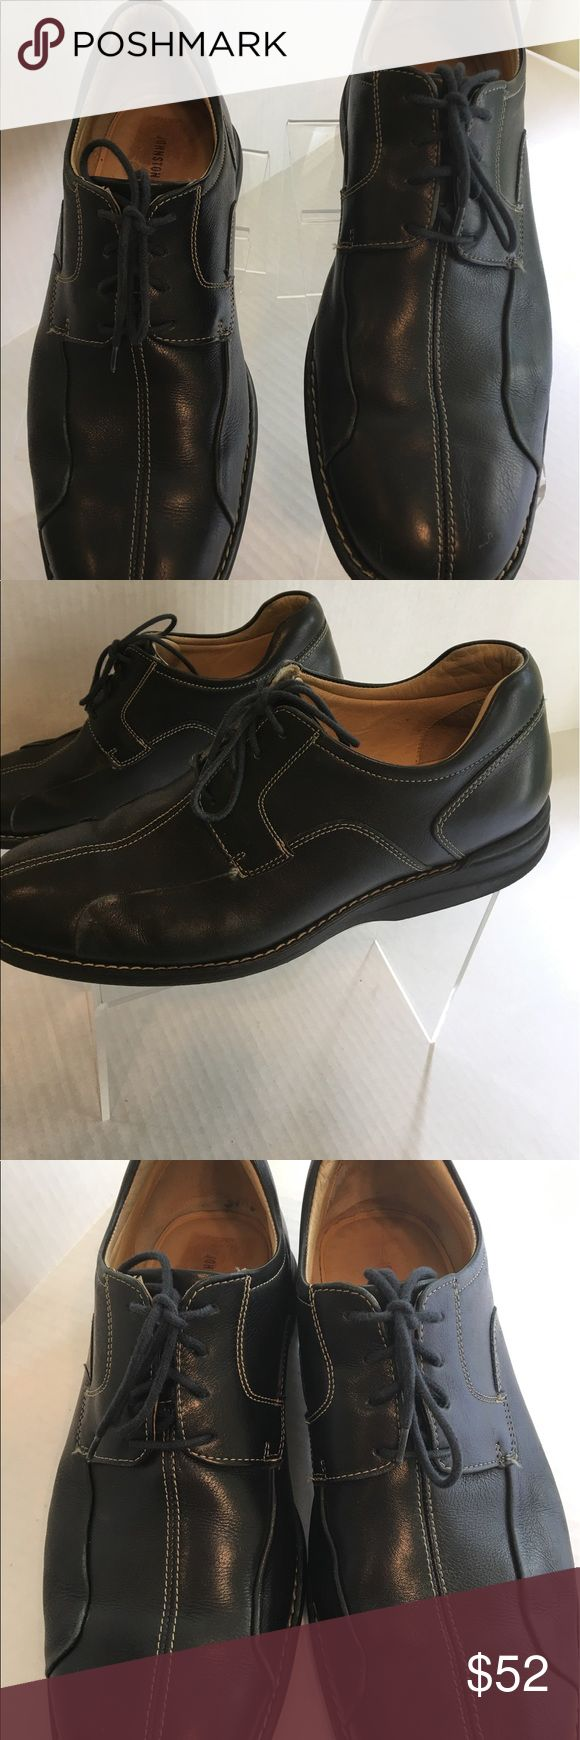 Johnson and Murphy Leather Shoes These shoes are in like-new condition. Made in Brazil of glove-like quality leather. Lots of great cushioning. White topstitching. Johnson and Murphy Shoes Oxfords & Derbys